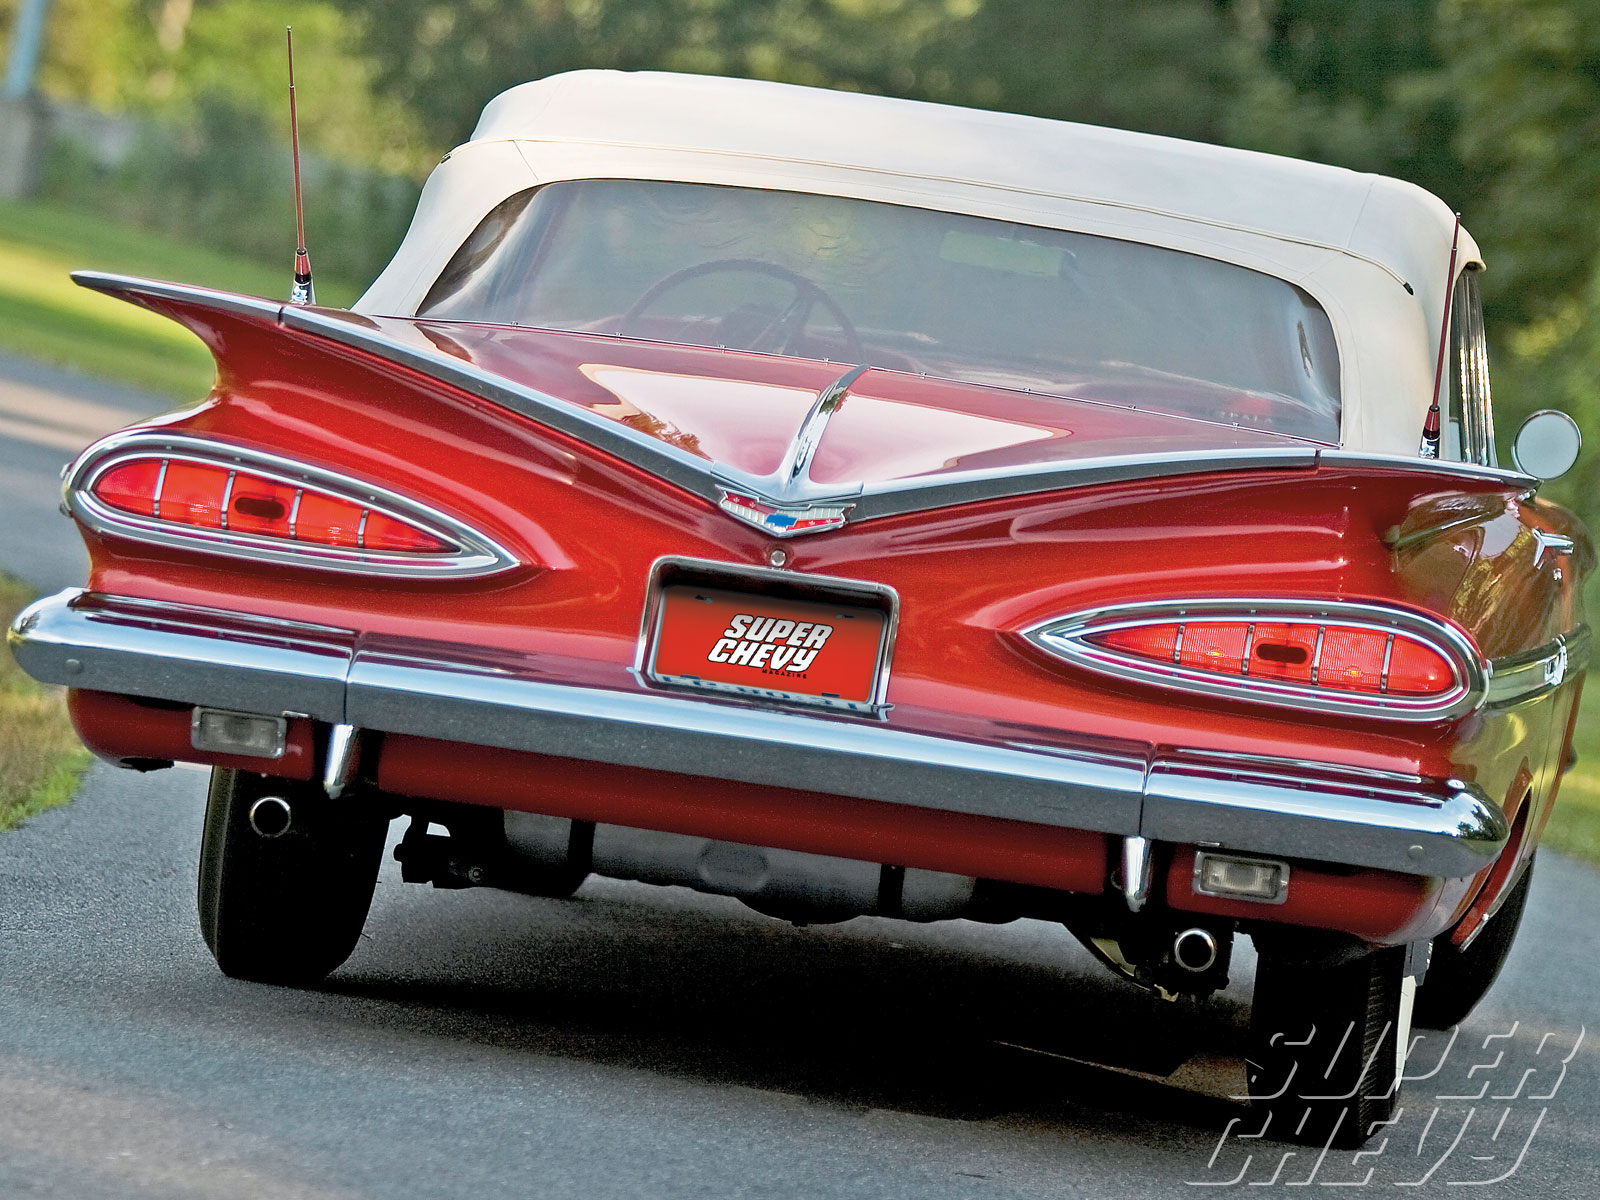 Scott Chalk 1959 Chevrolet